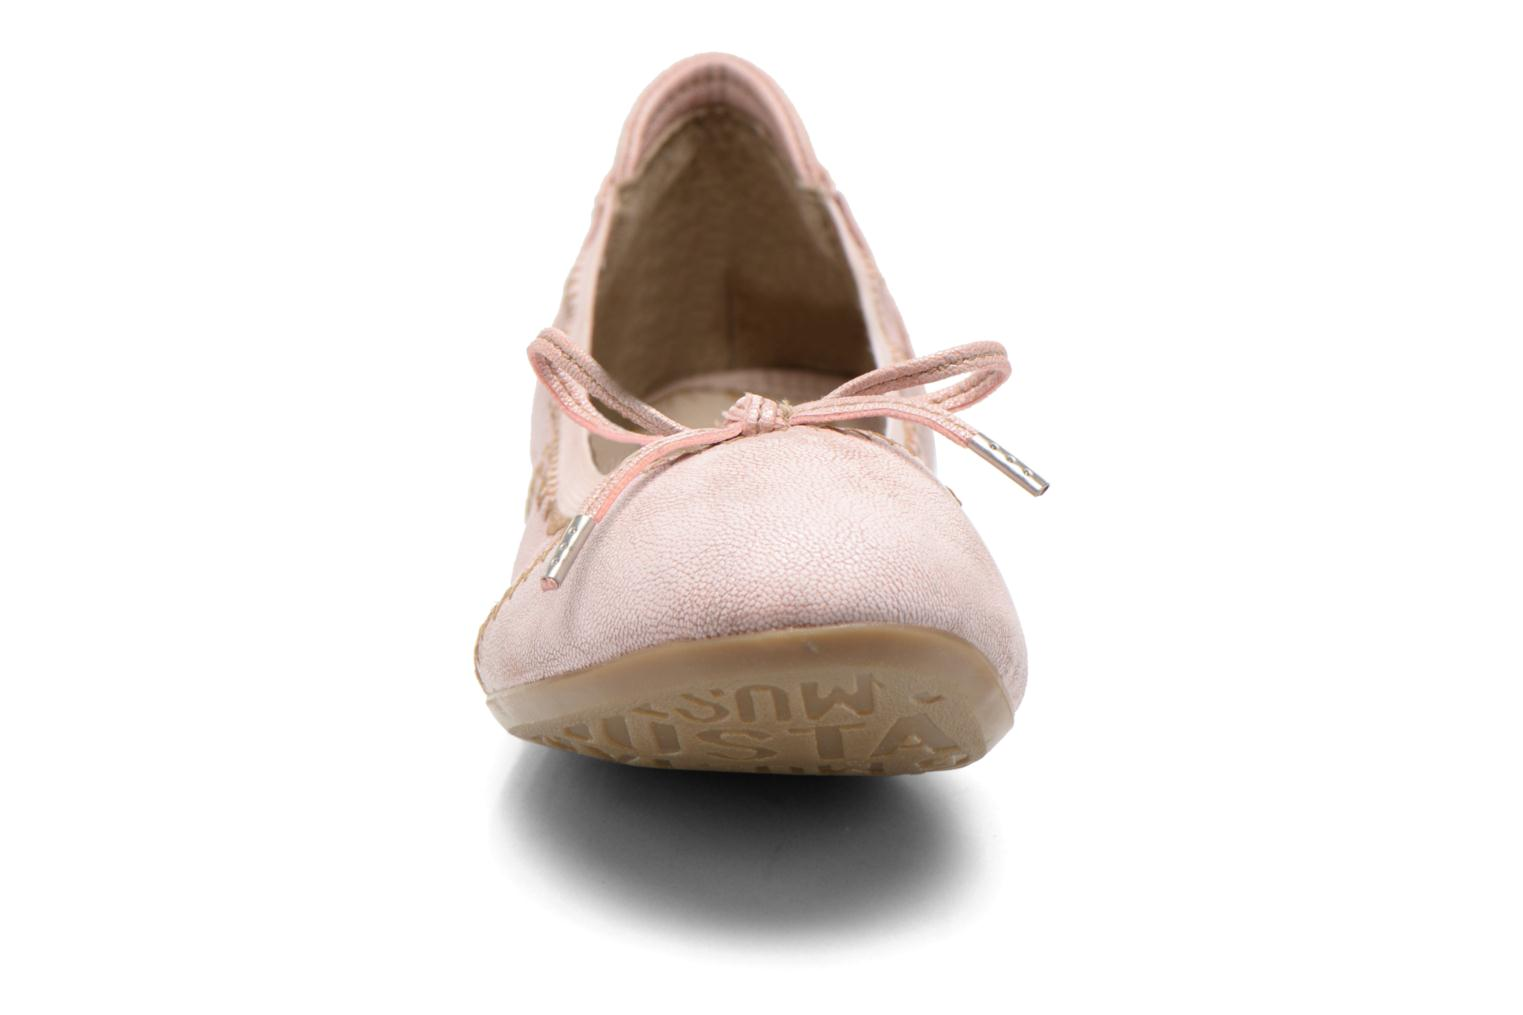 Ballerina's Mustang shoes Leah Roze model